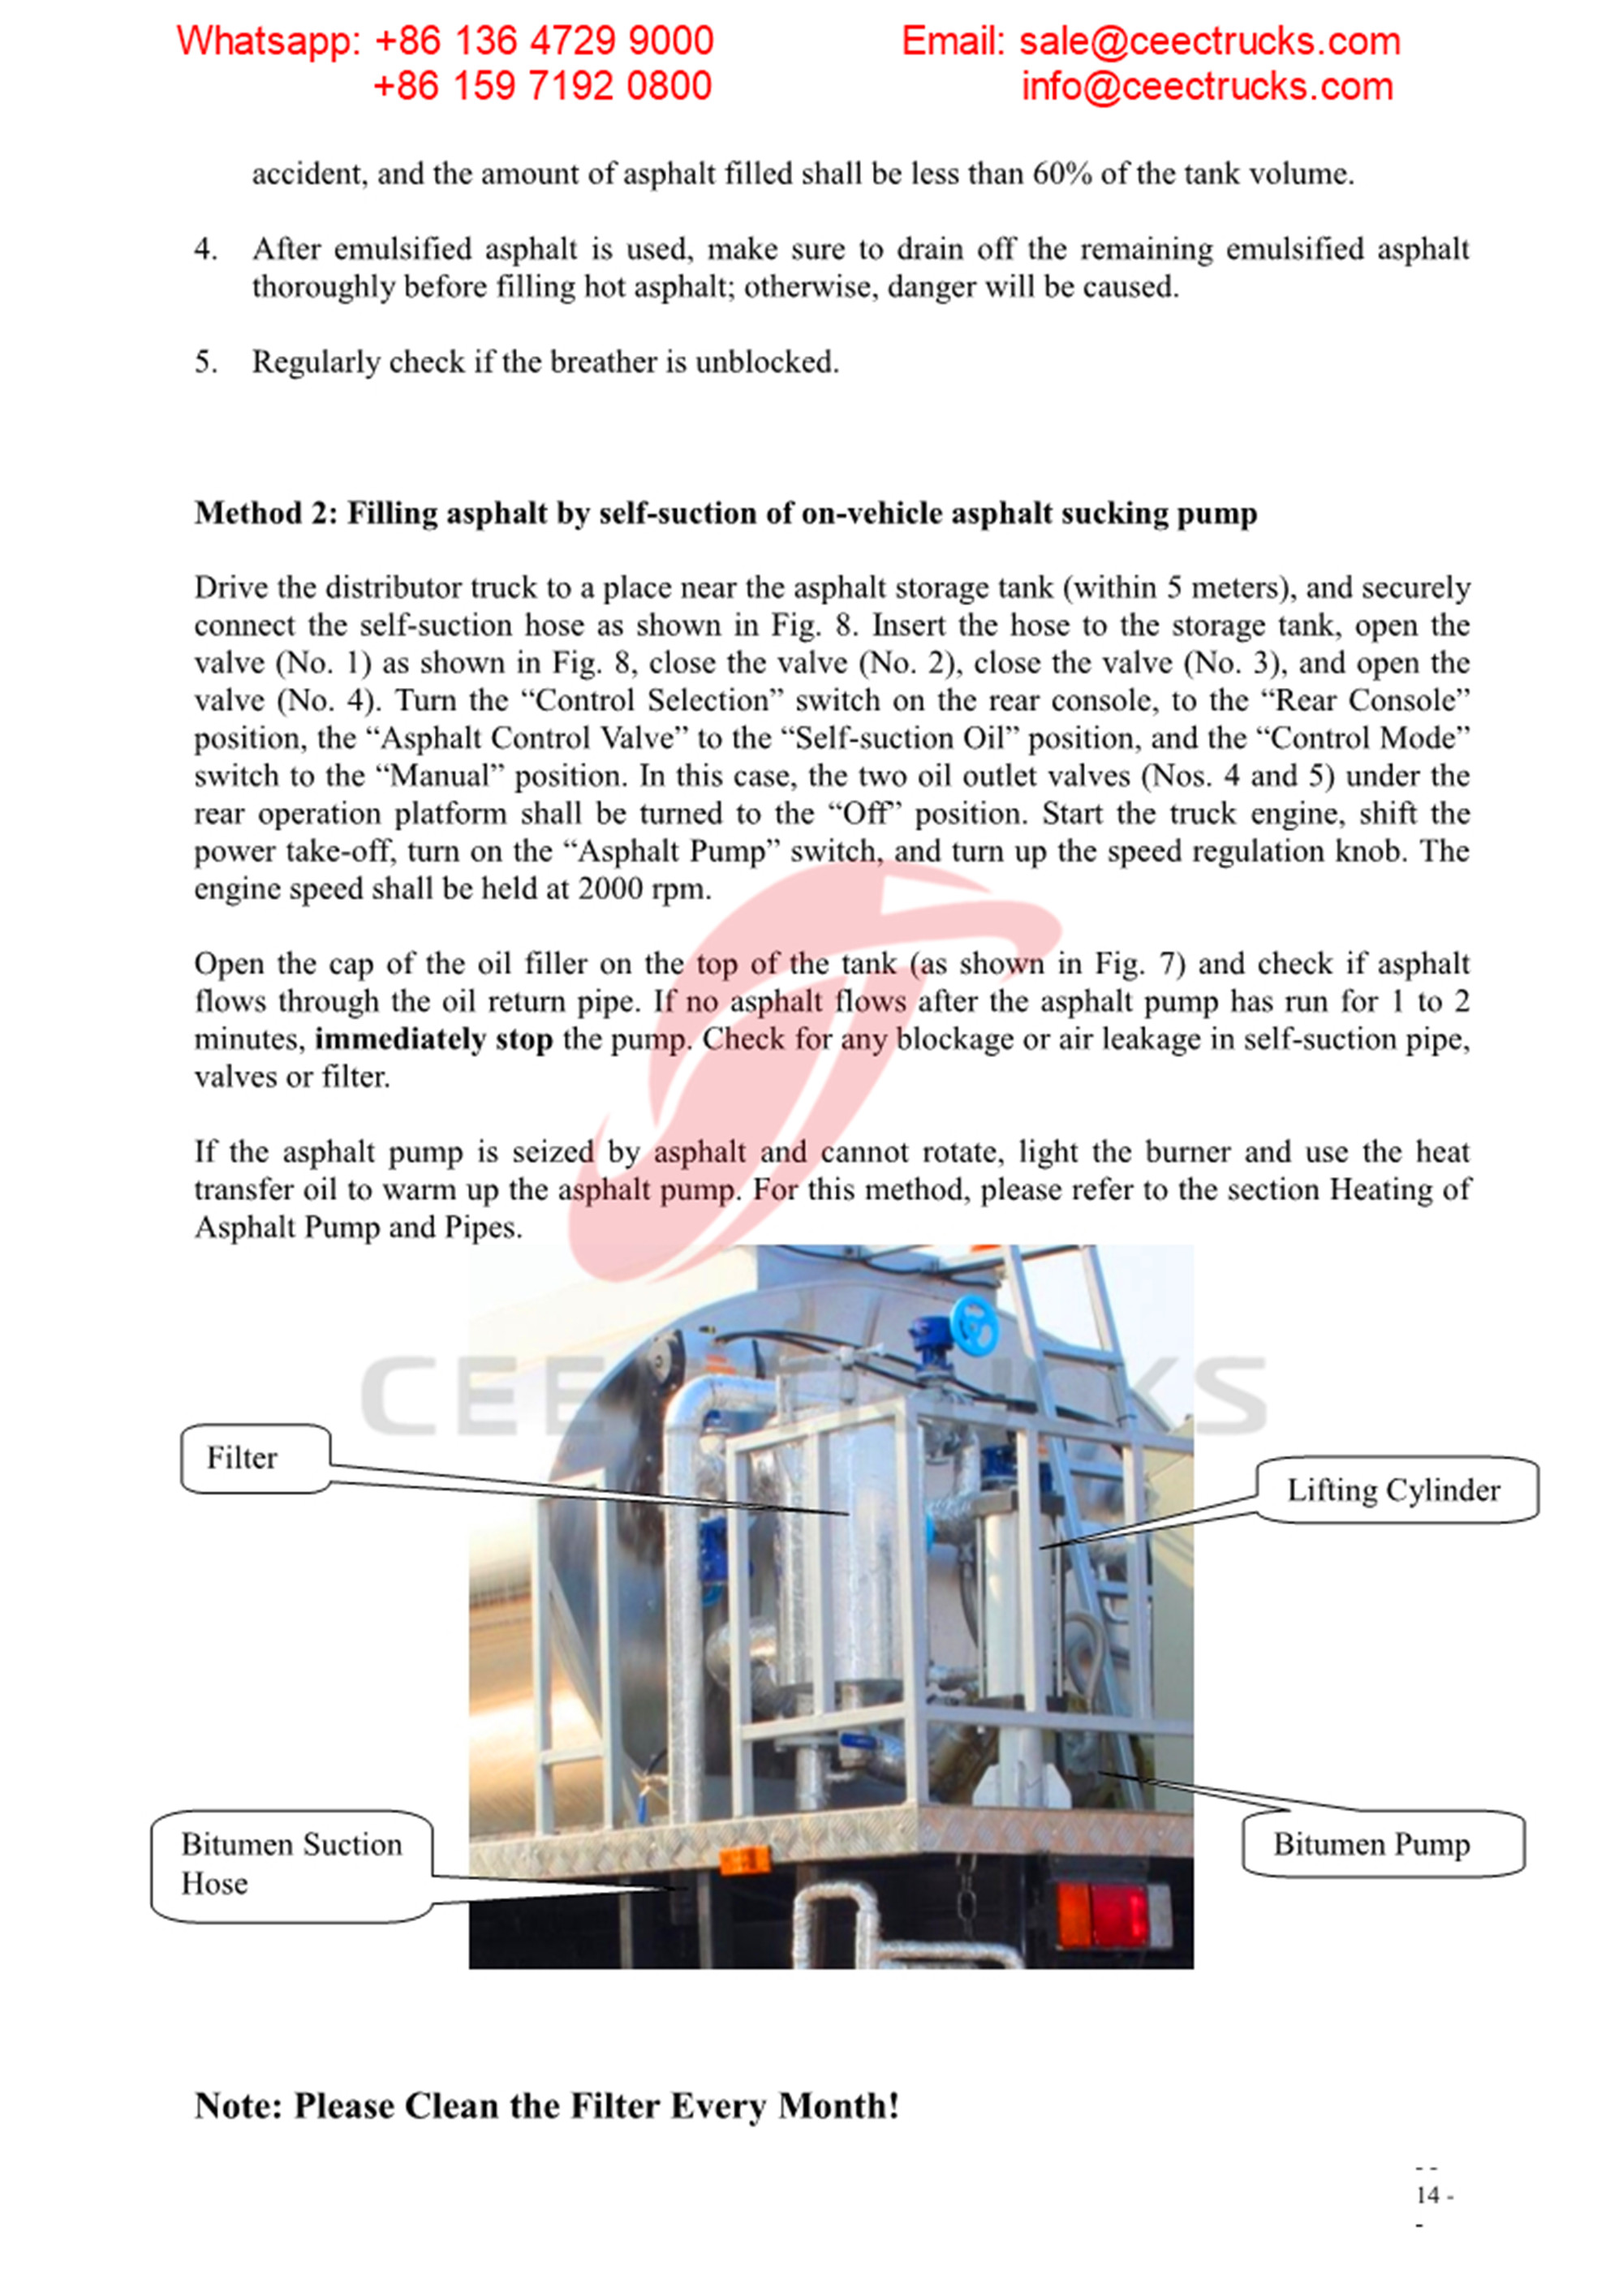 Myanmar customer buy asphalt distribution truck